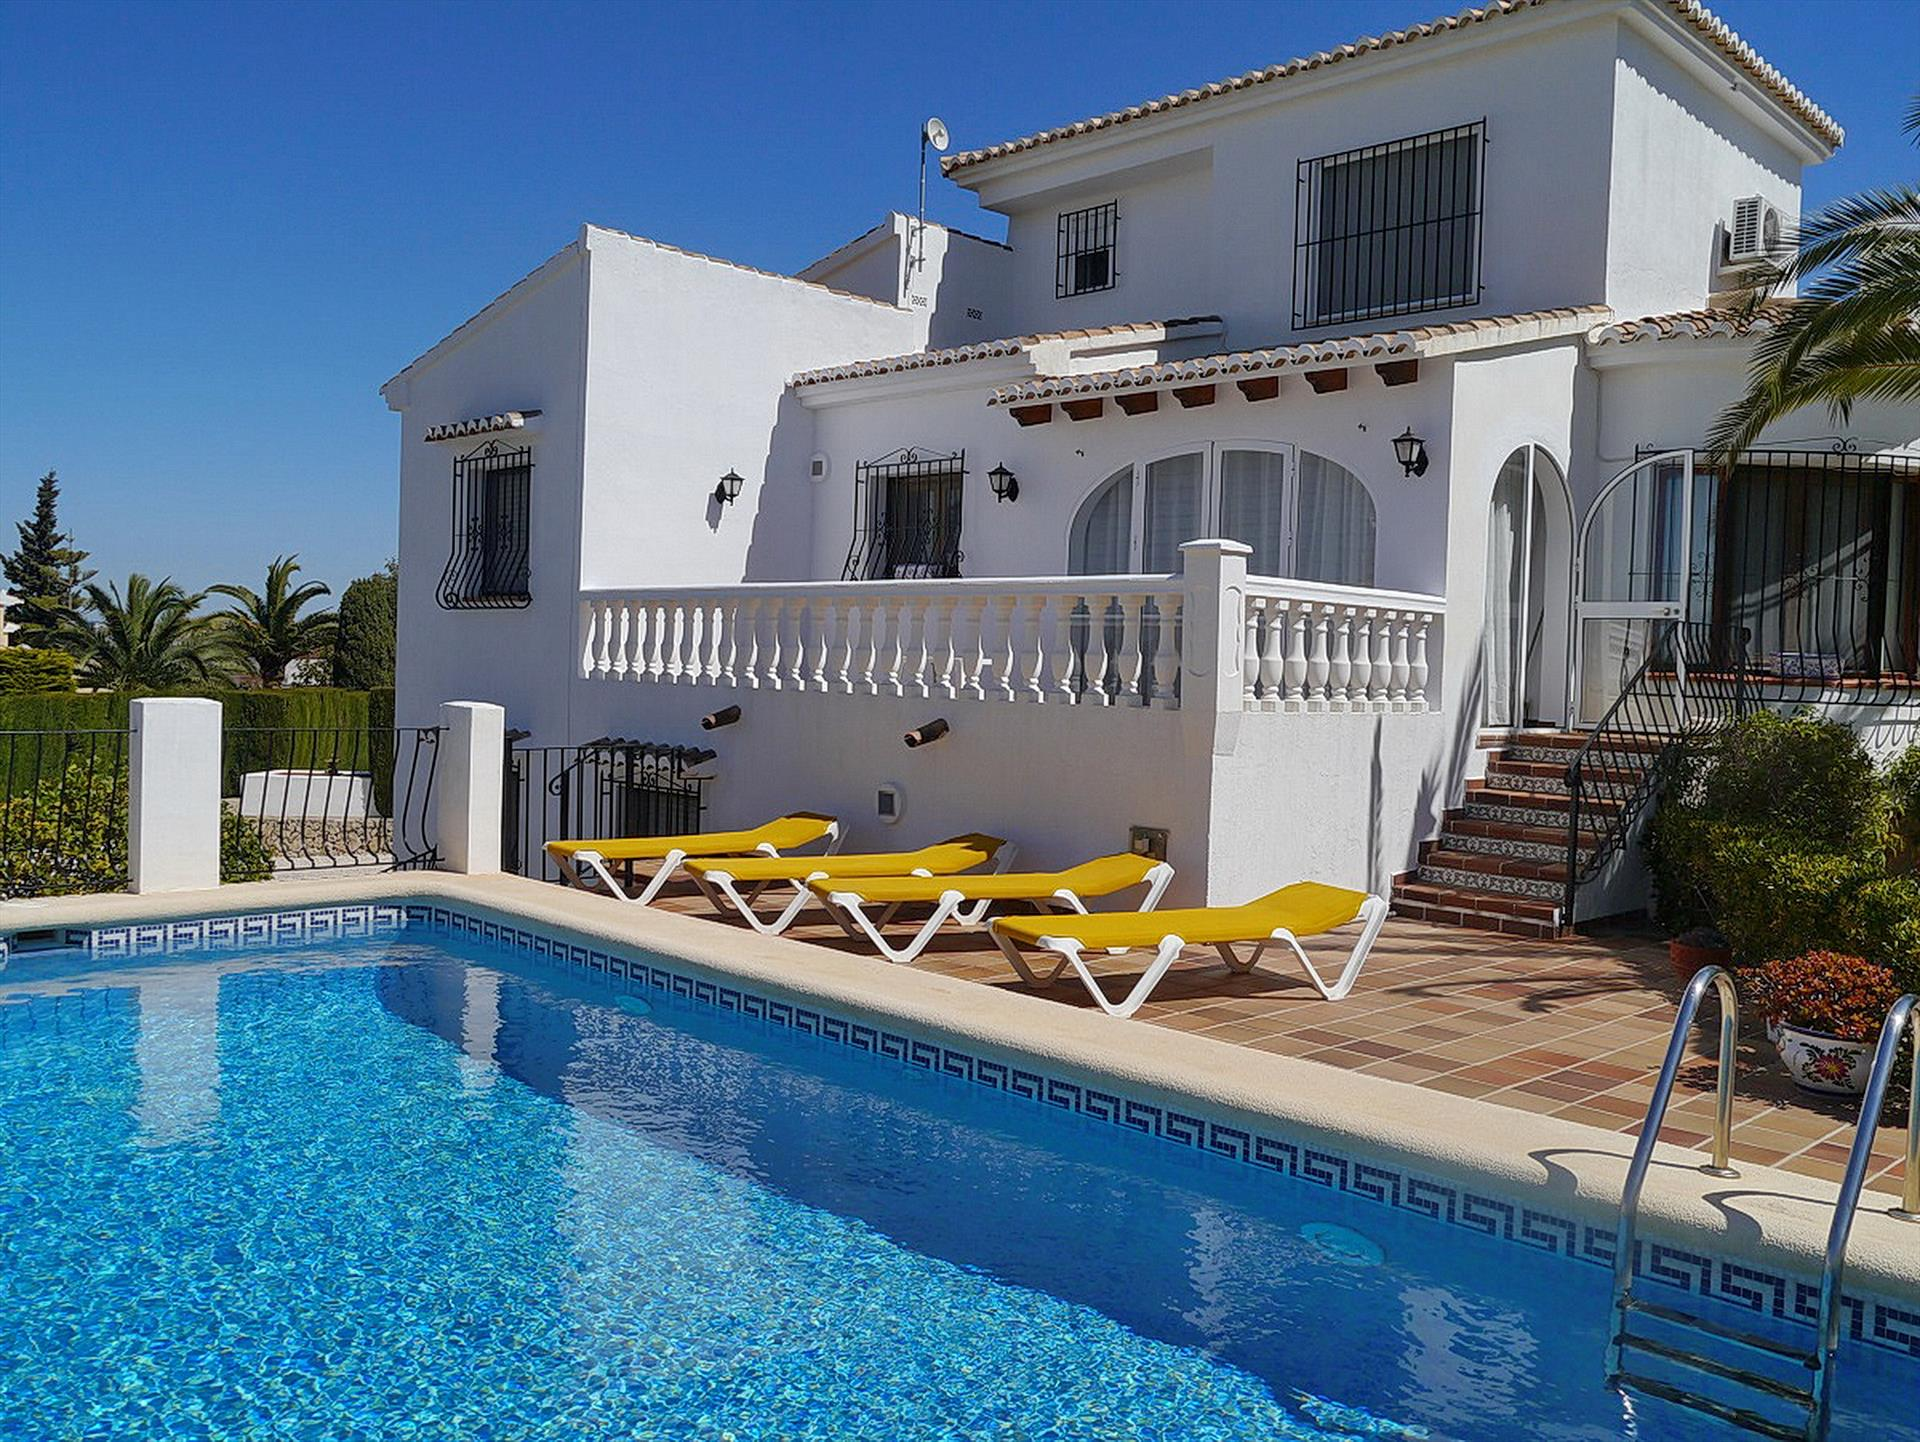 Sophie, Modern and nice villa in Benitachell, on the Costa Blanca, Spain  with private pool for 6 persons.....